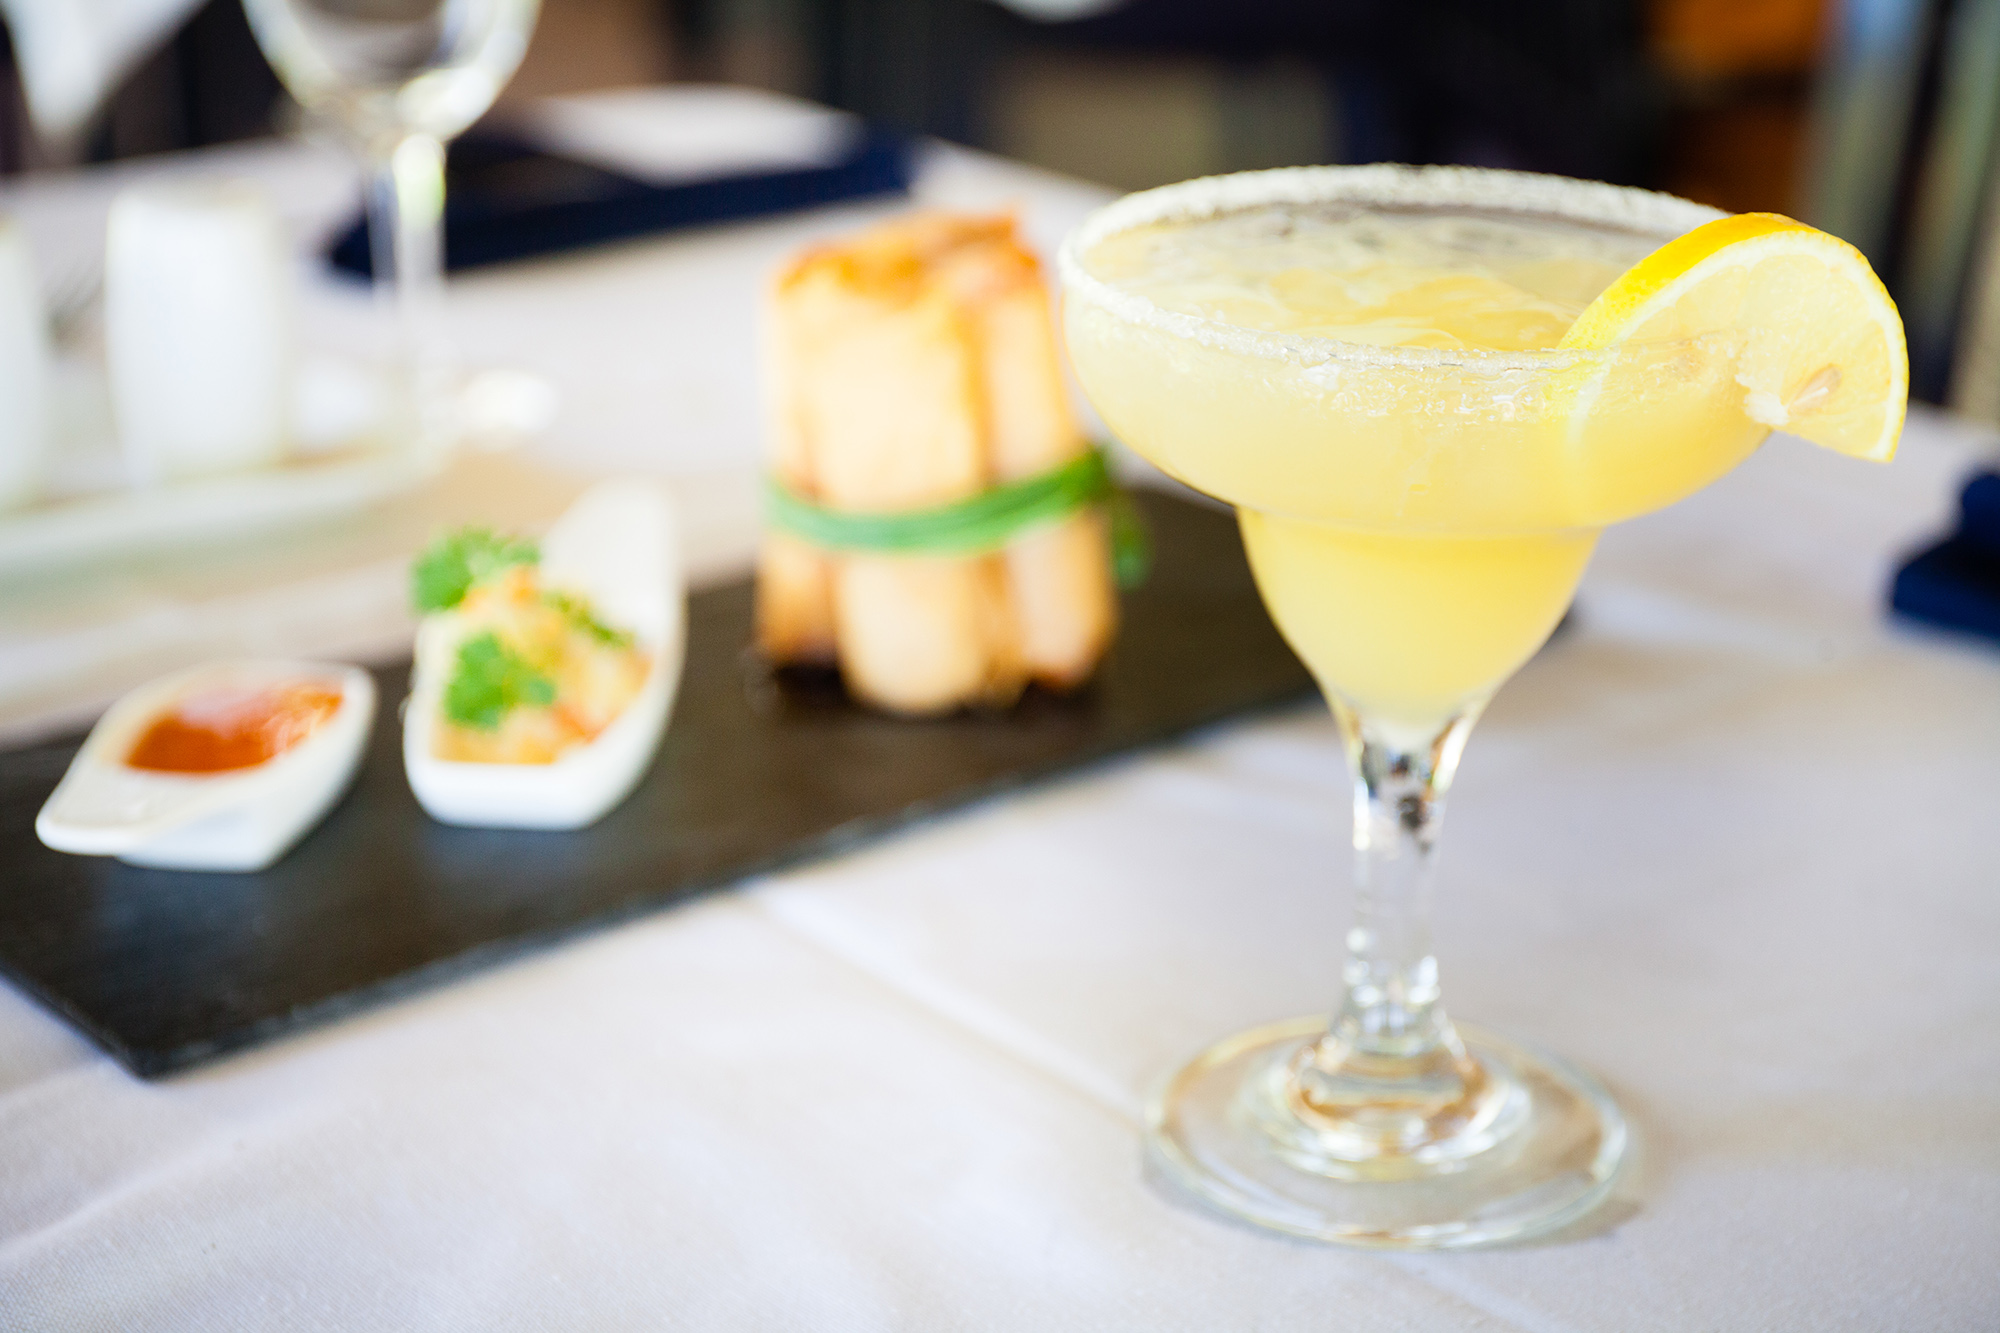 Spring rolls with a Margarita